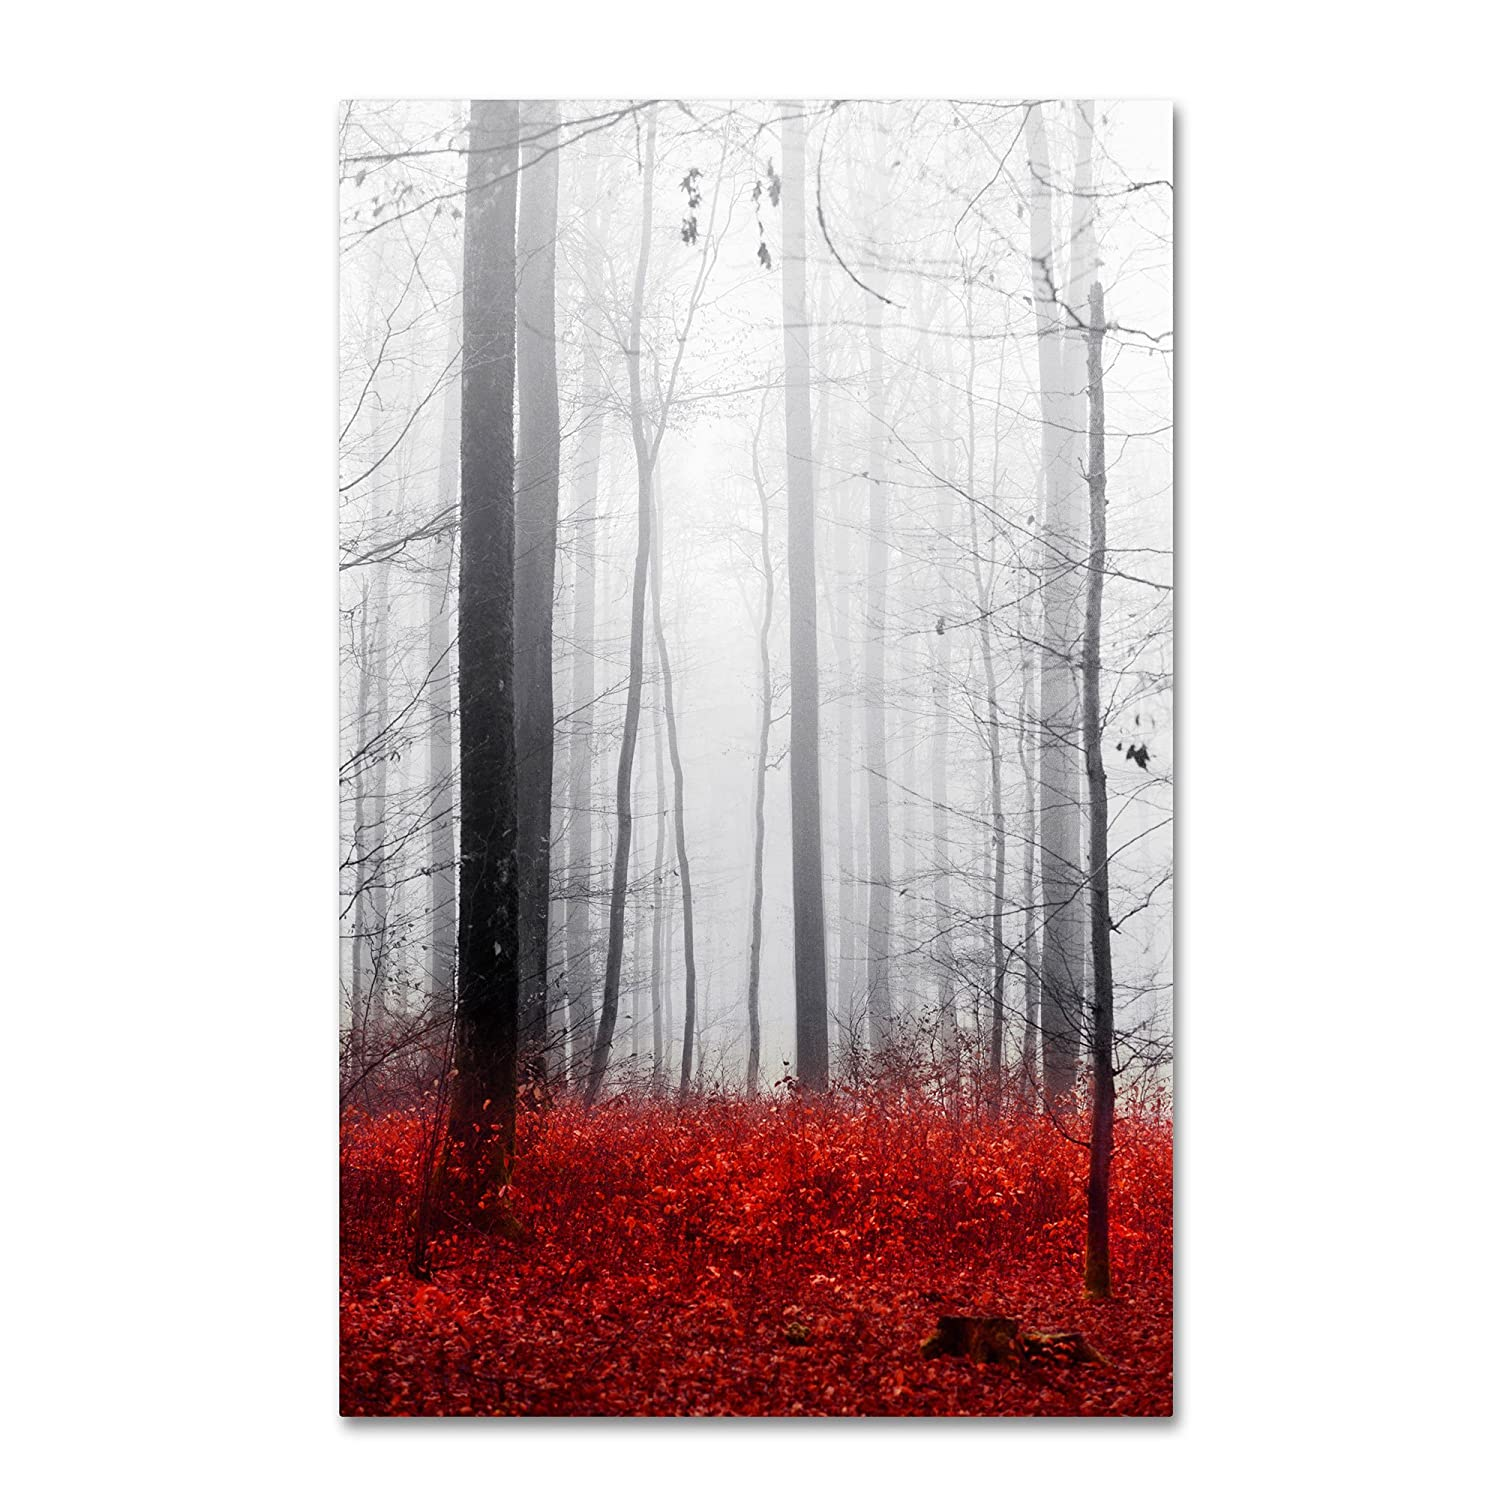 Trademark Fine ArtLittle Red Carpet Artwork by Philippe Sainte-Laudy, 12 by 19-Inch PSL0273-C1219GG